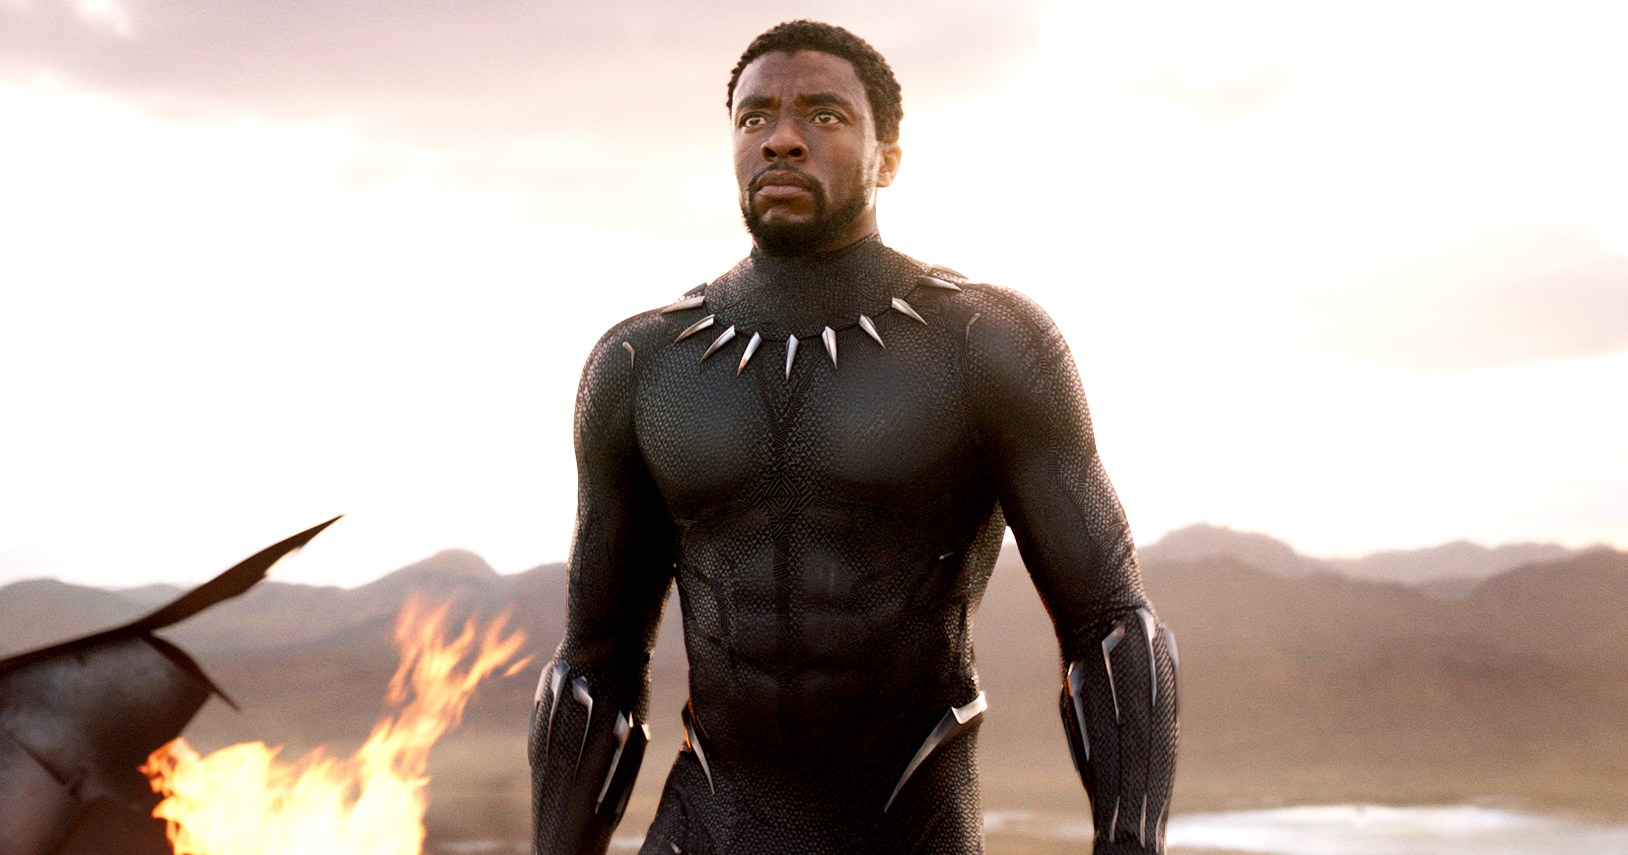 Chadwick Boseman on the 'Vulnerable' Process of Becoming 'Black Panther'